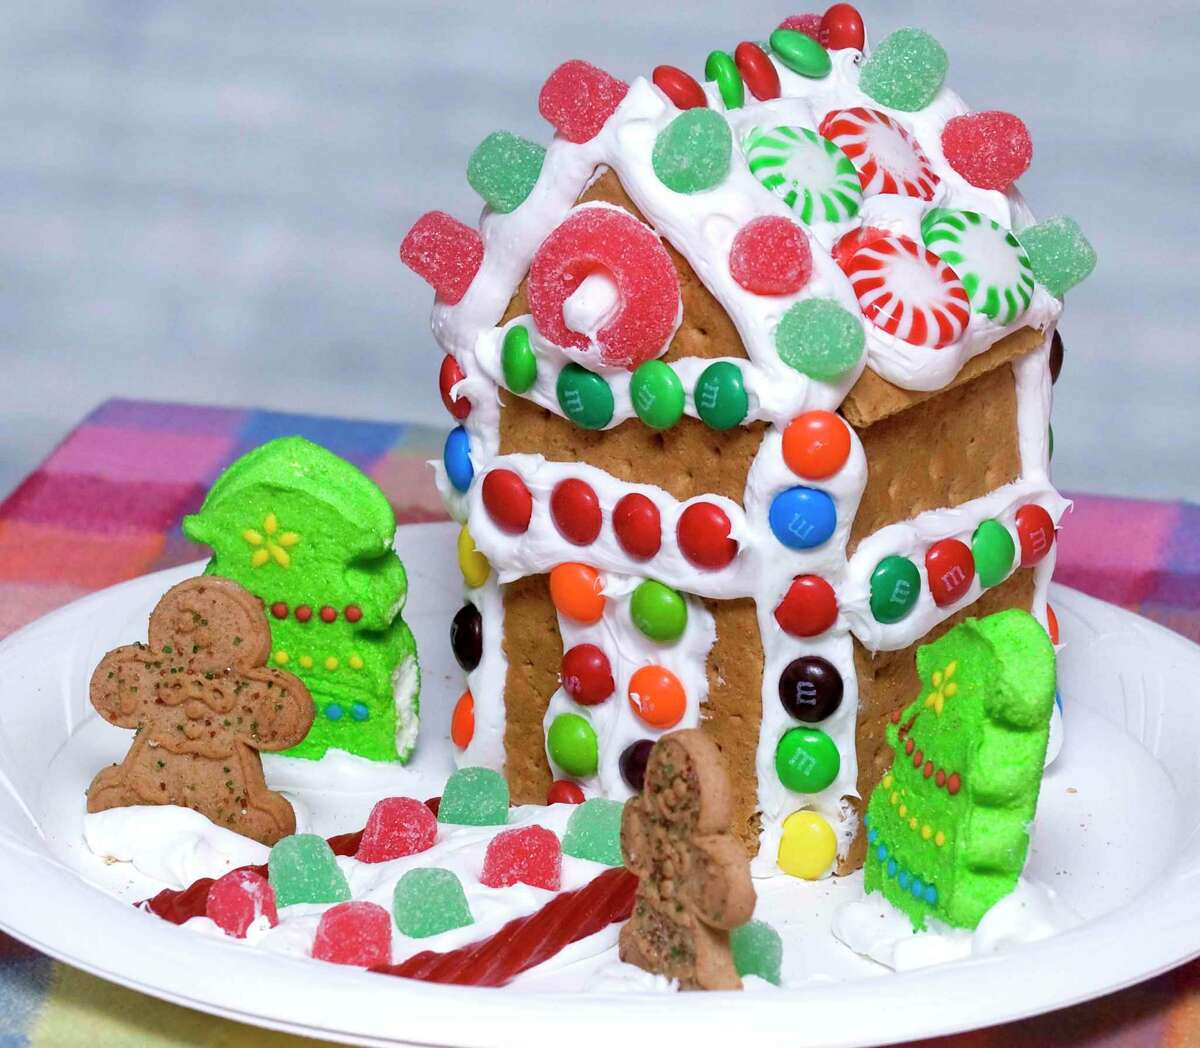 A Gingerbread House is previously seen in Ridgefield. Here is a list of upcoming events taking place in Ridgefield, which includes a Gingerbread Home for the Holidays fundraiser at the Lounsbury House.